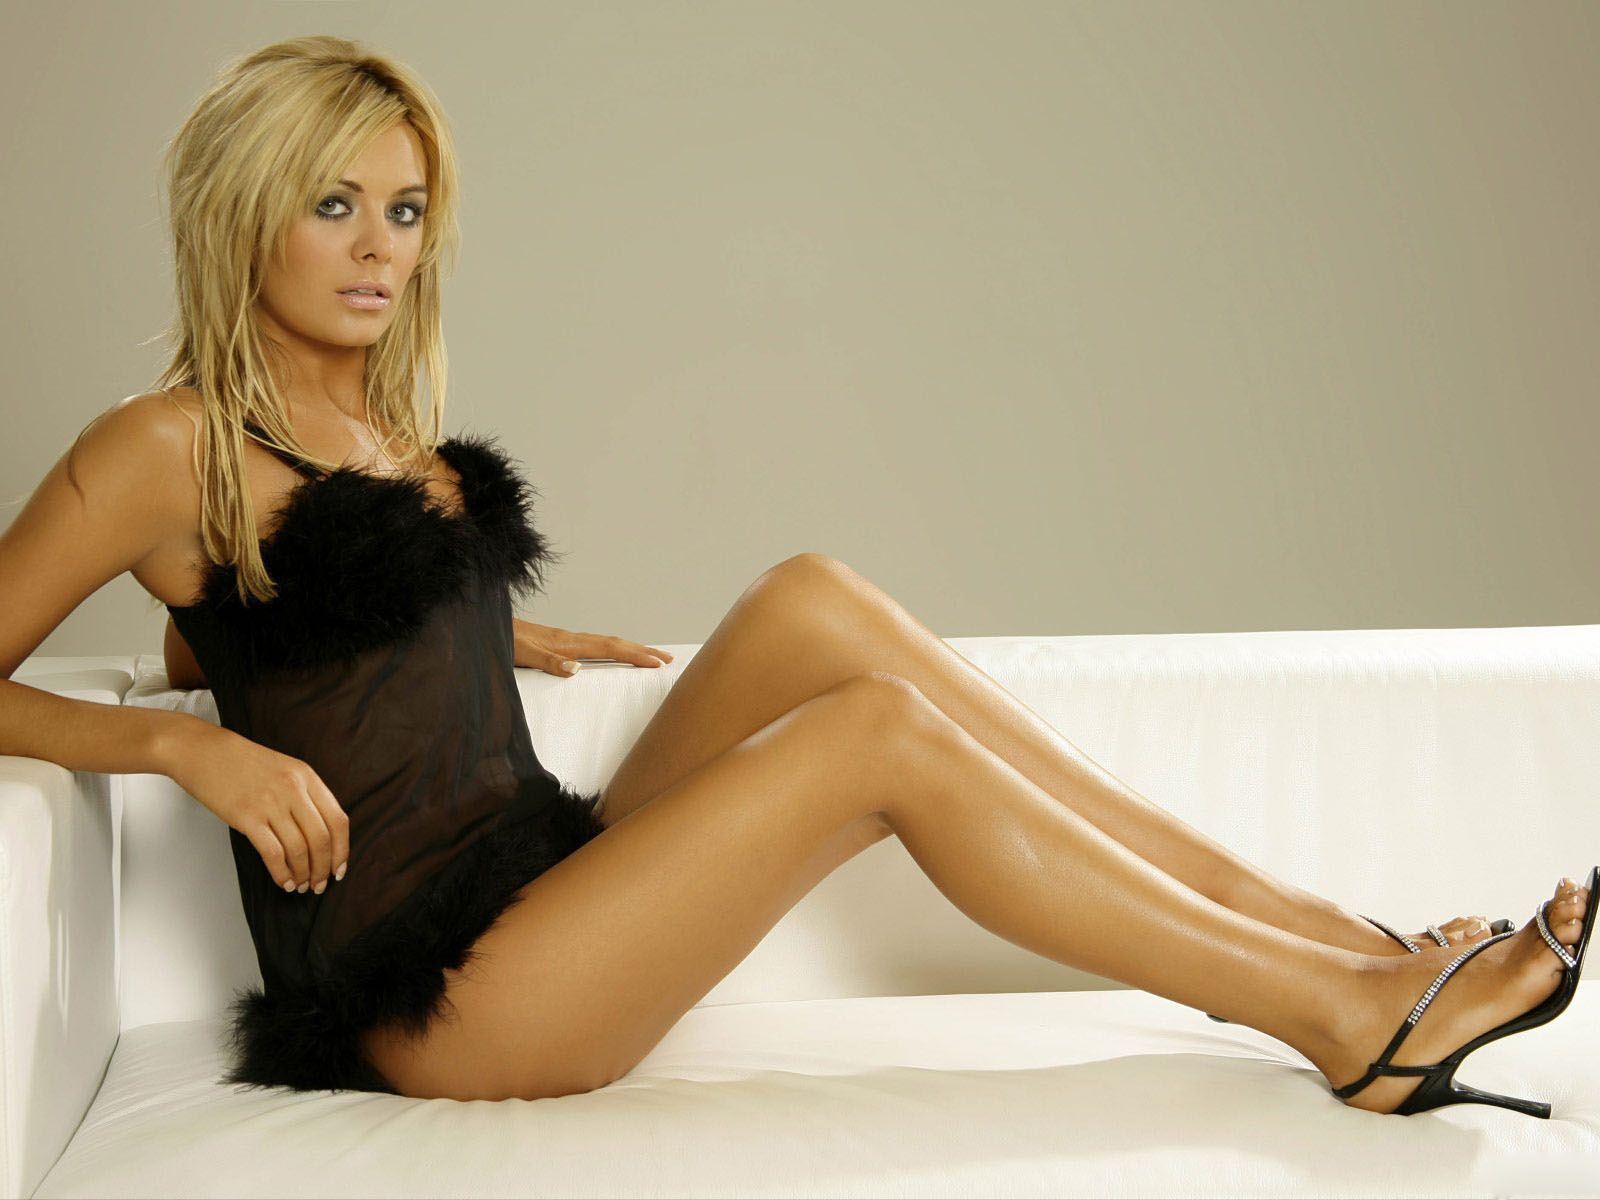 Remarkable, kaley cuoco very hot and